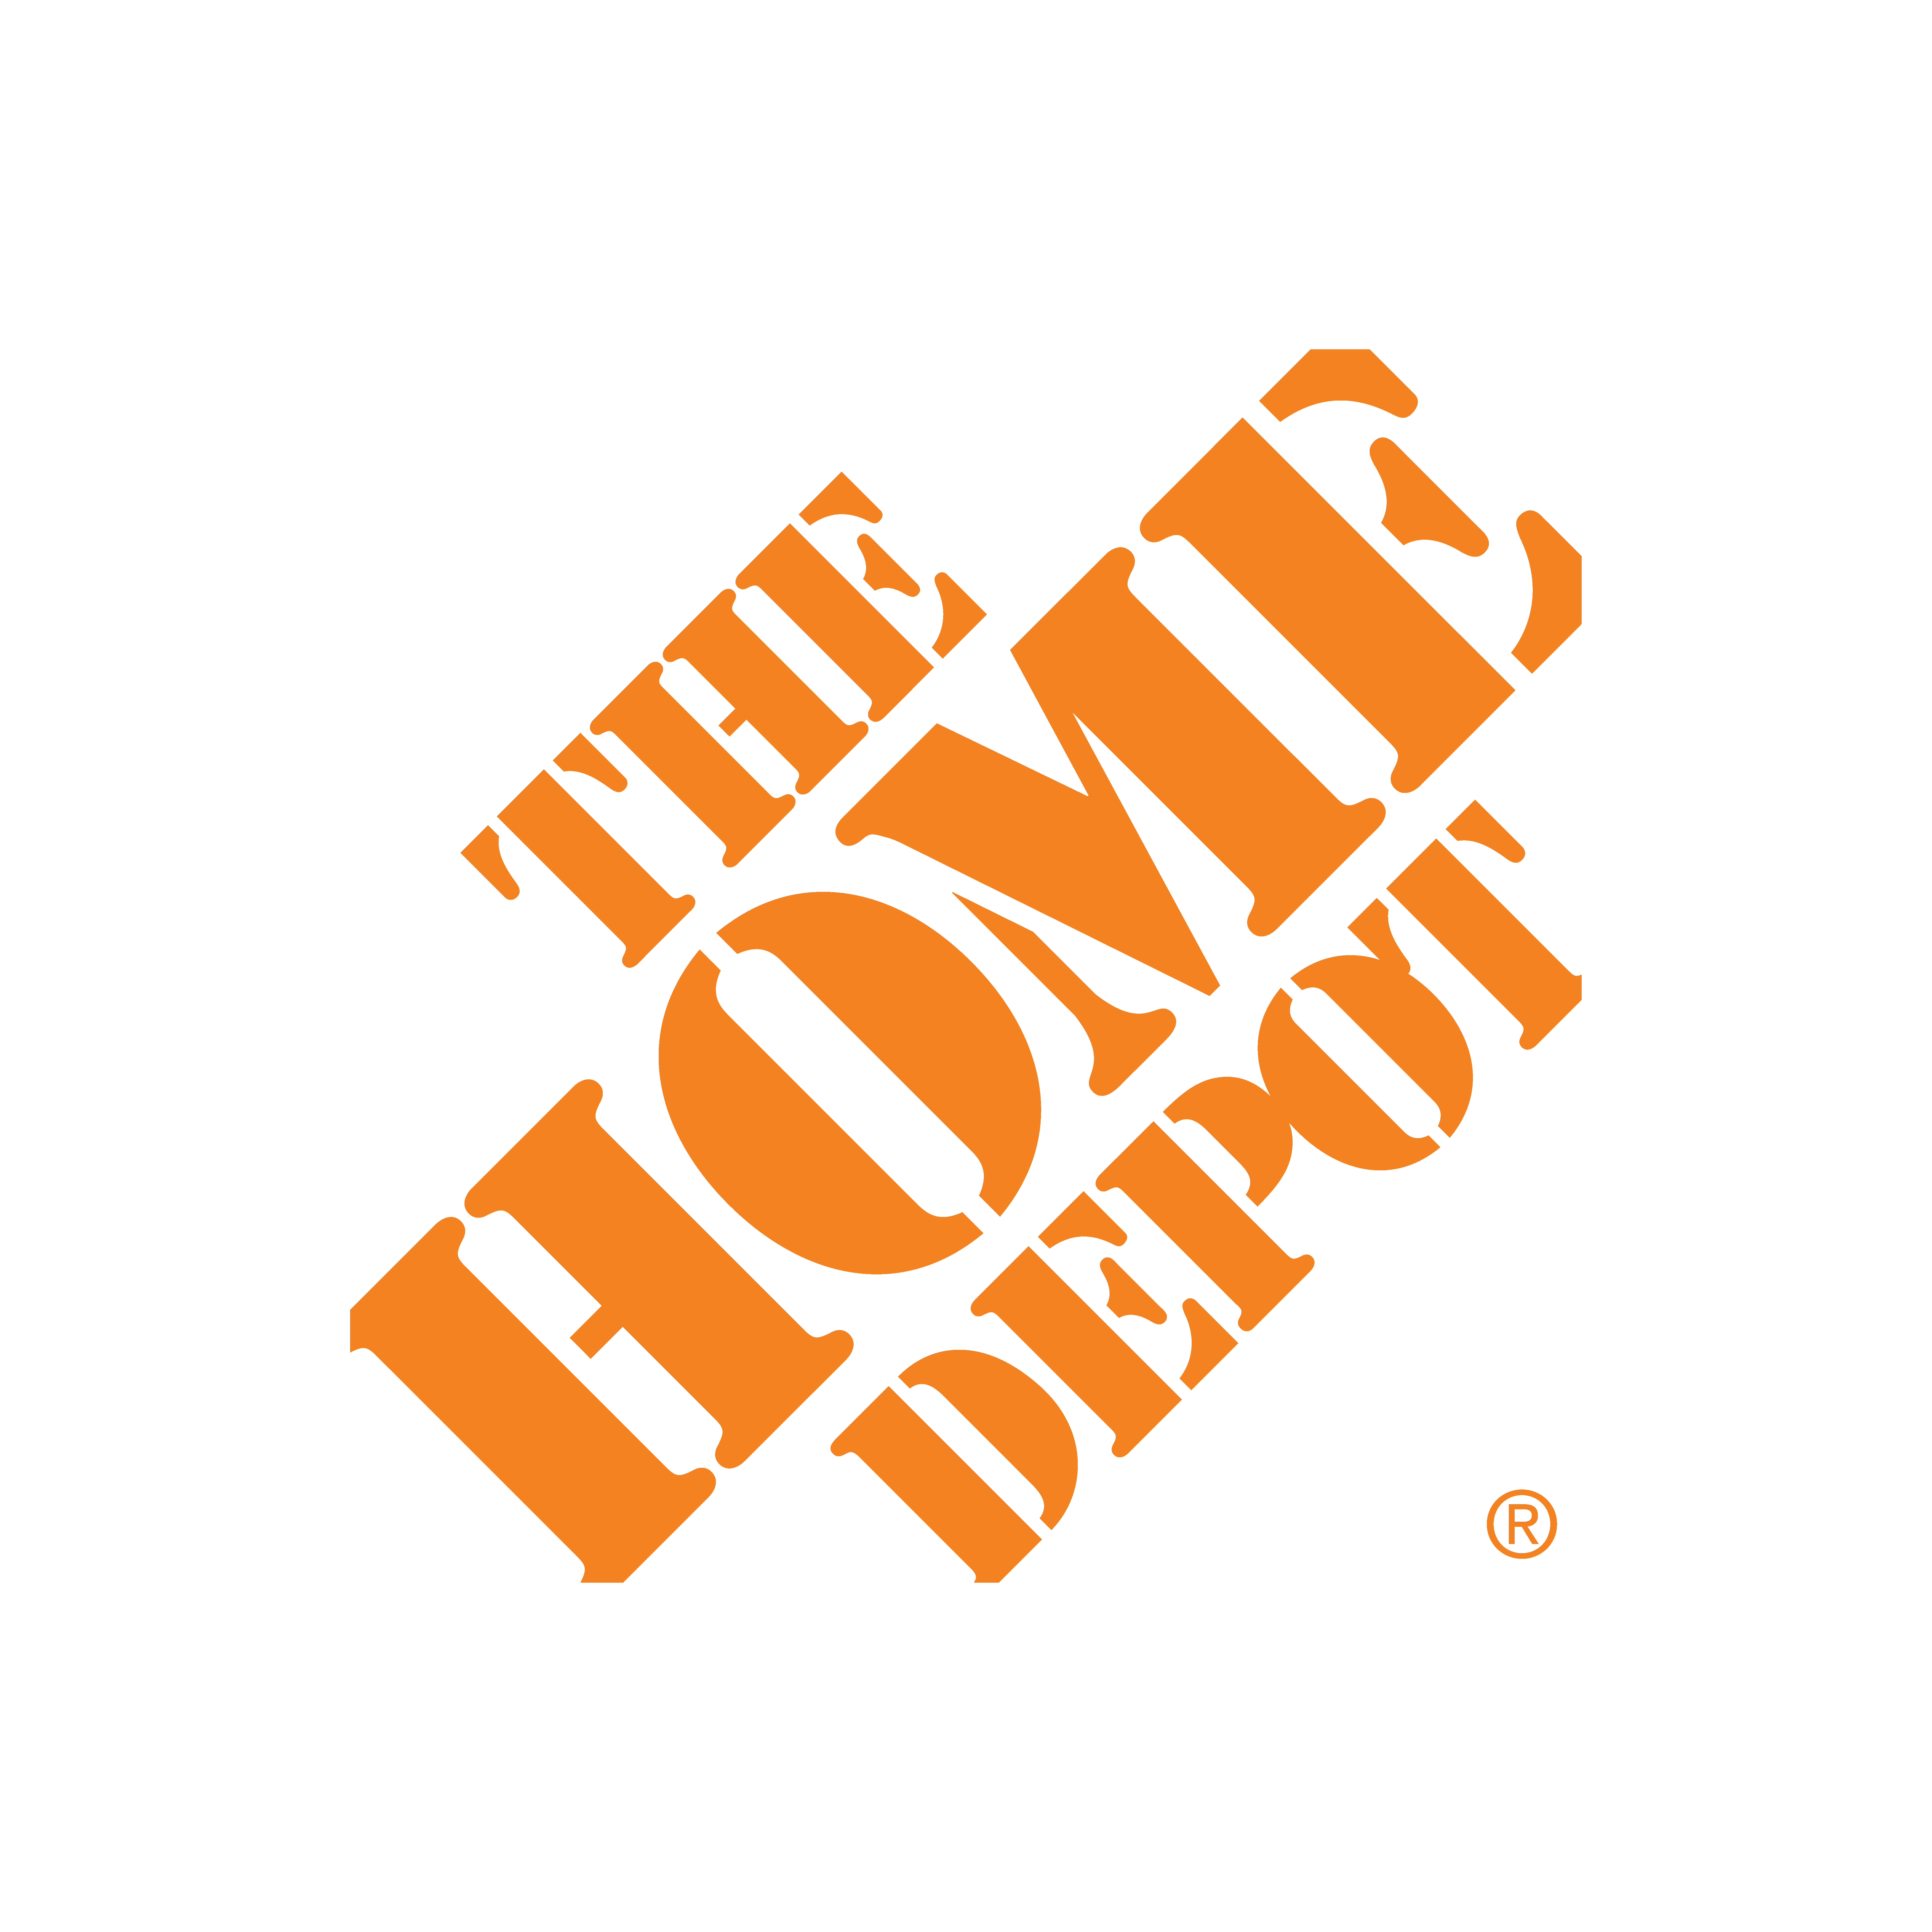 Home Depot Discount Home Depot Latest Deals The Krazy Coupon Lady